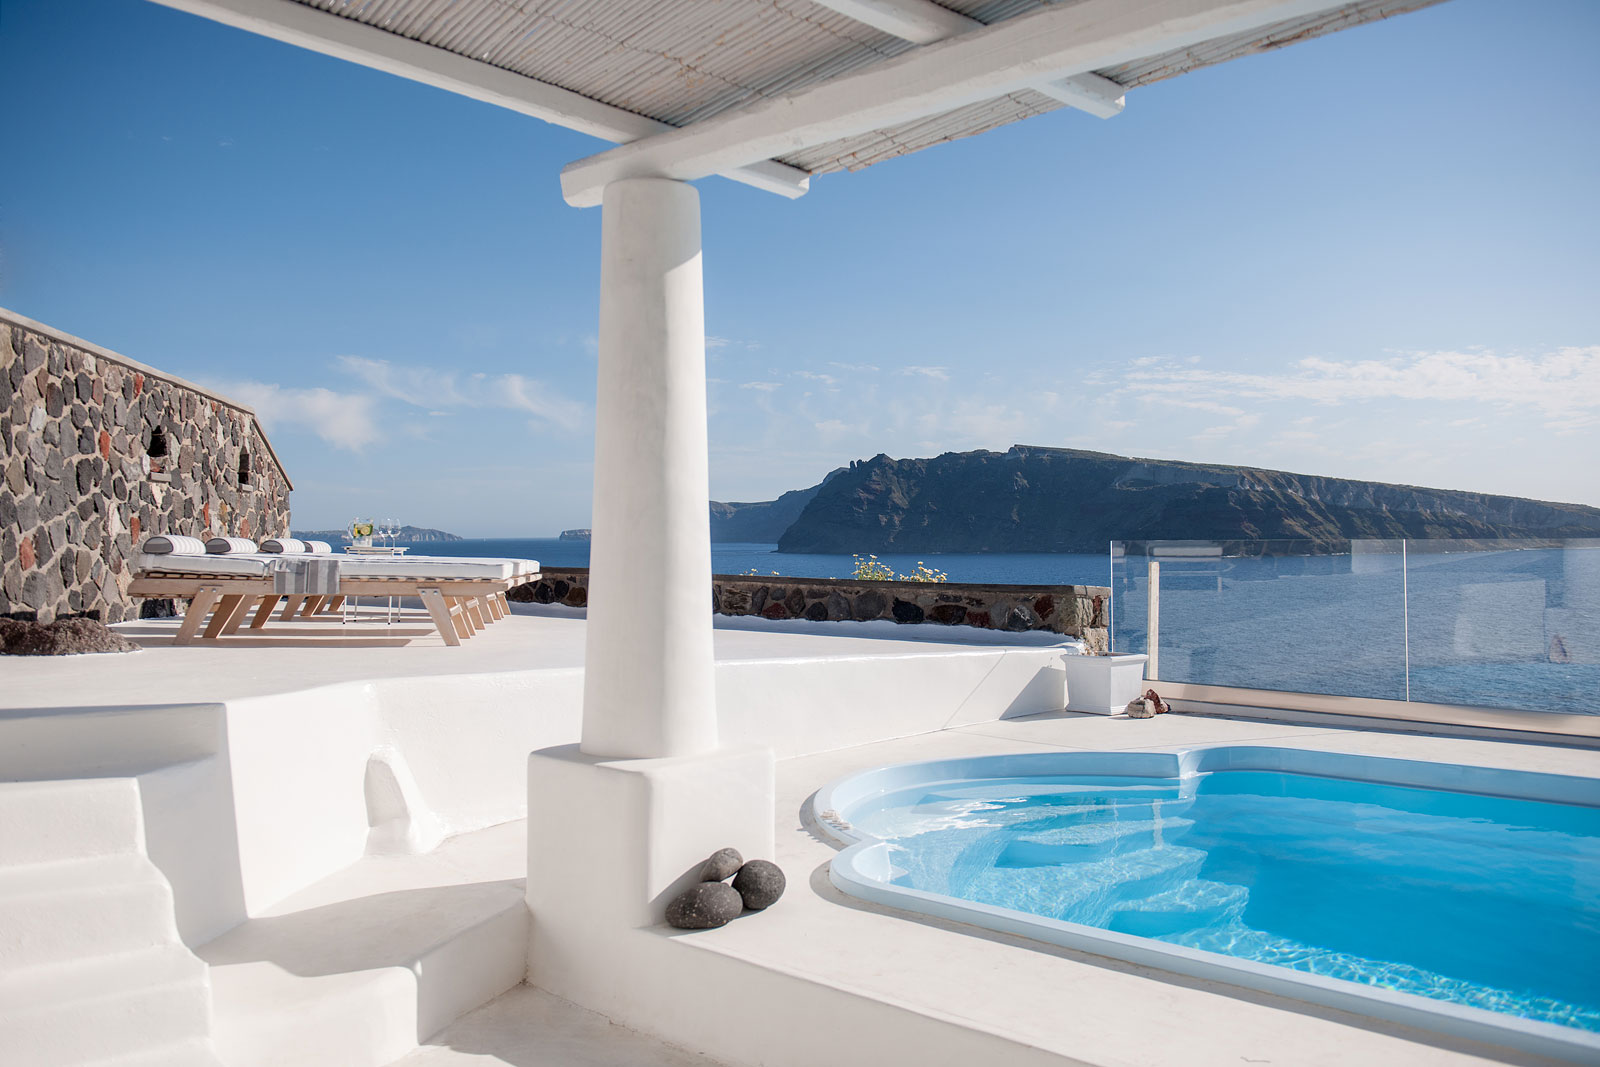 Luxury 3 bedroomed villas Oia